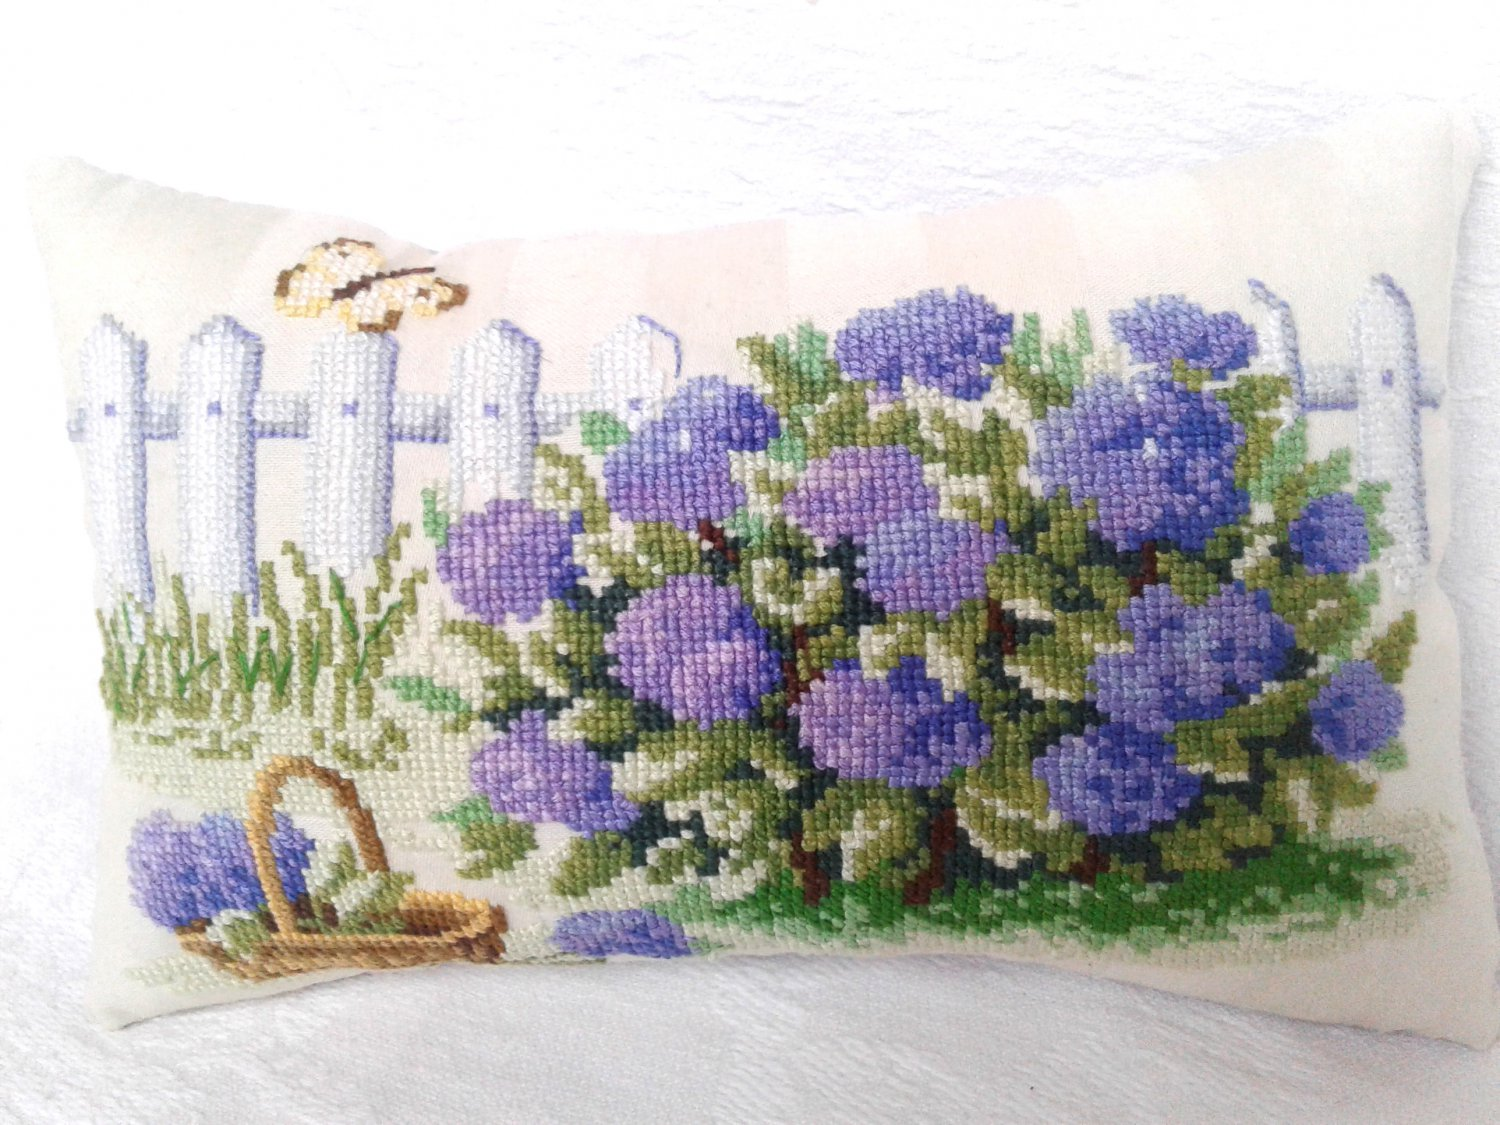 Decorative pillow, home decoration idea, modern cross stitch, completed embroidery, unusual gift